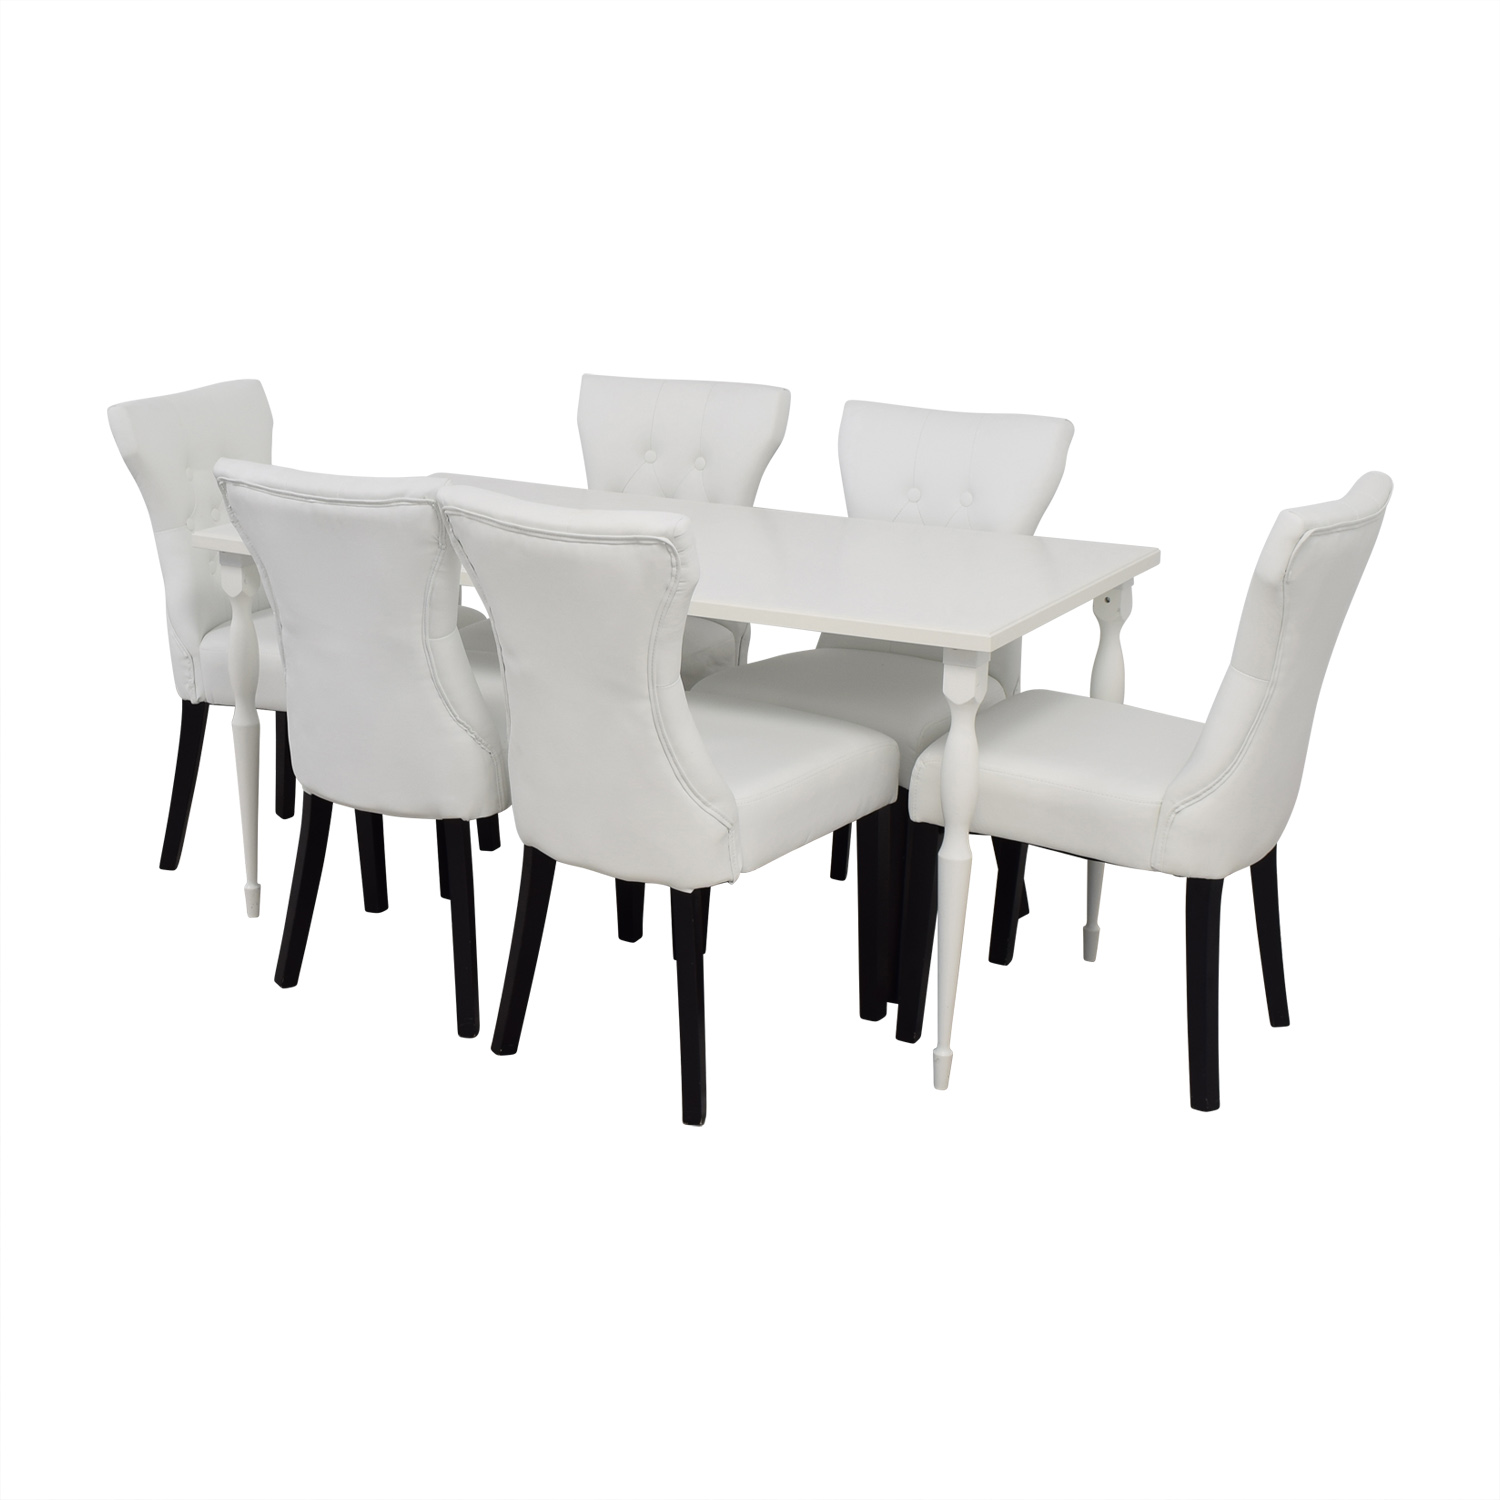 70% OFF - IKEA IKEA Dining Table and Chairs / Tables